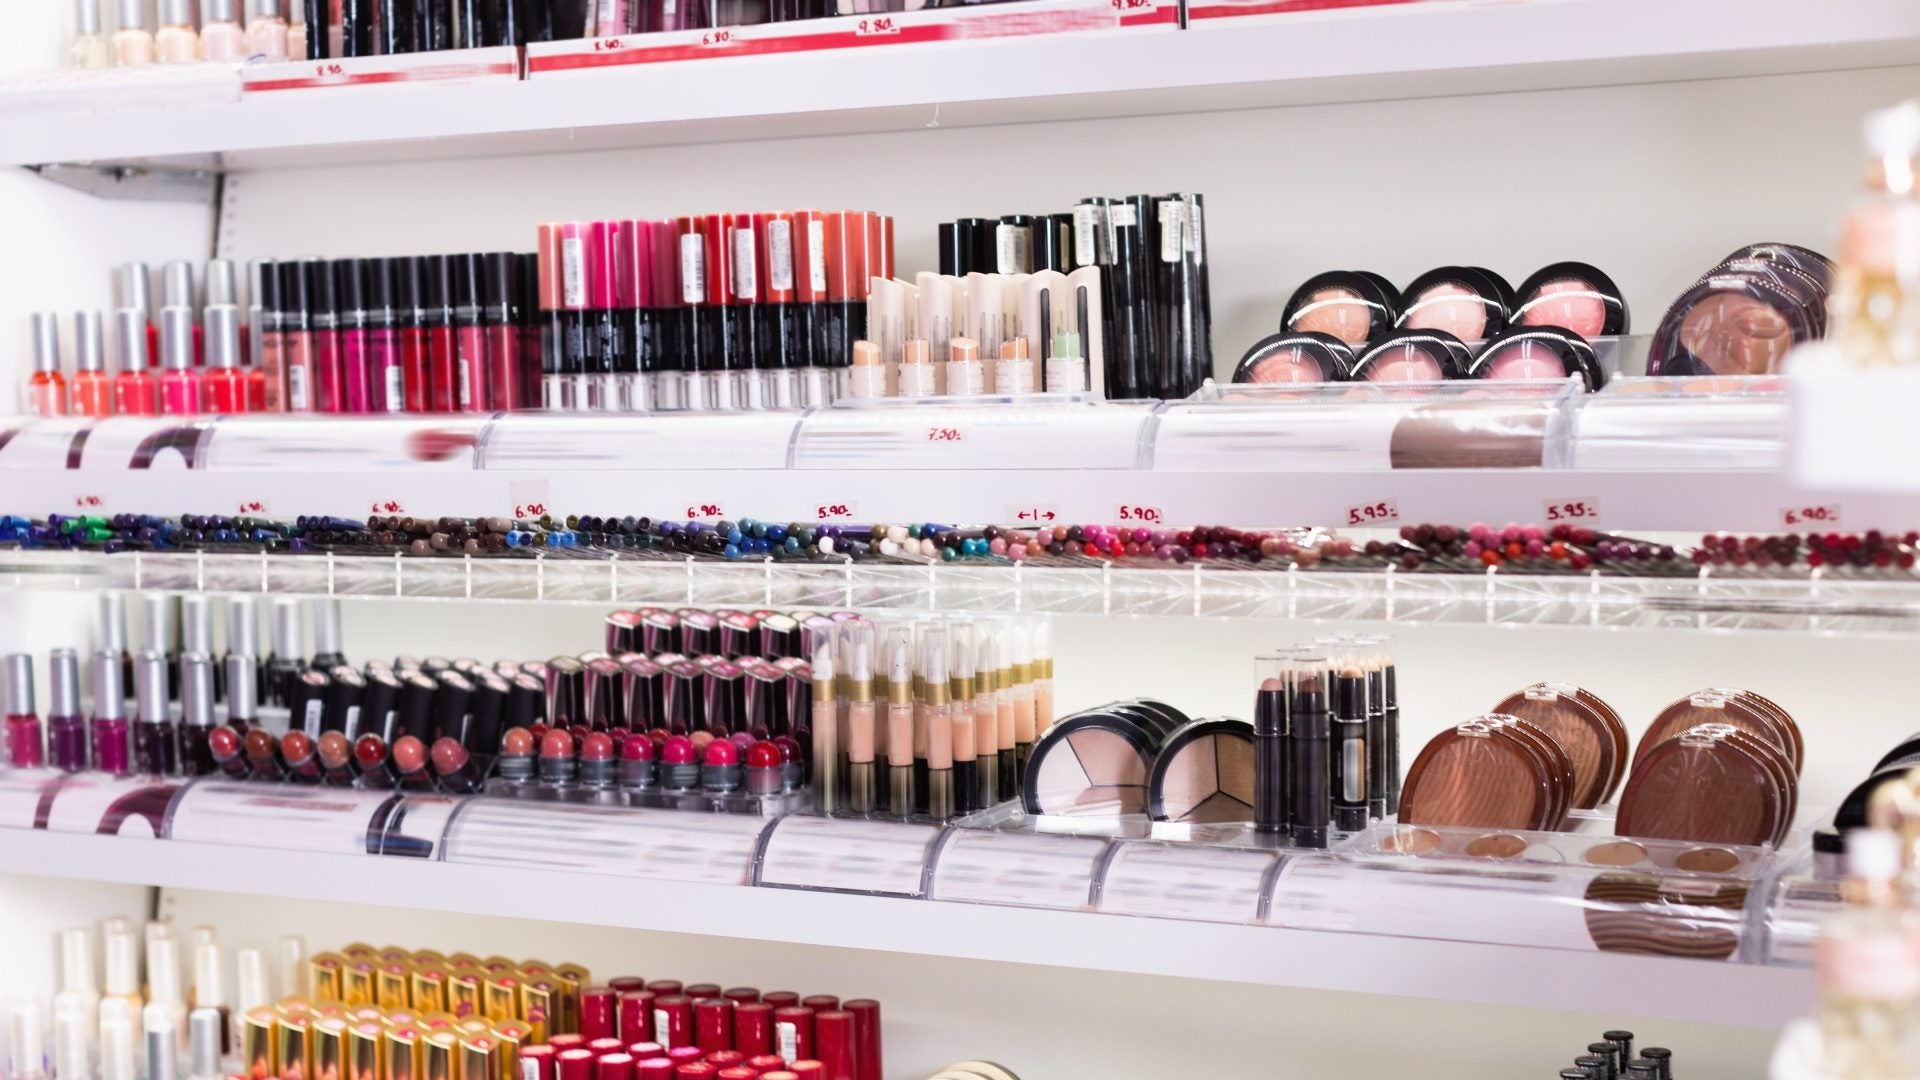 A Group Of Black Women Discuss What It's Like To Shop For Makeup At The Drugstore